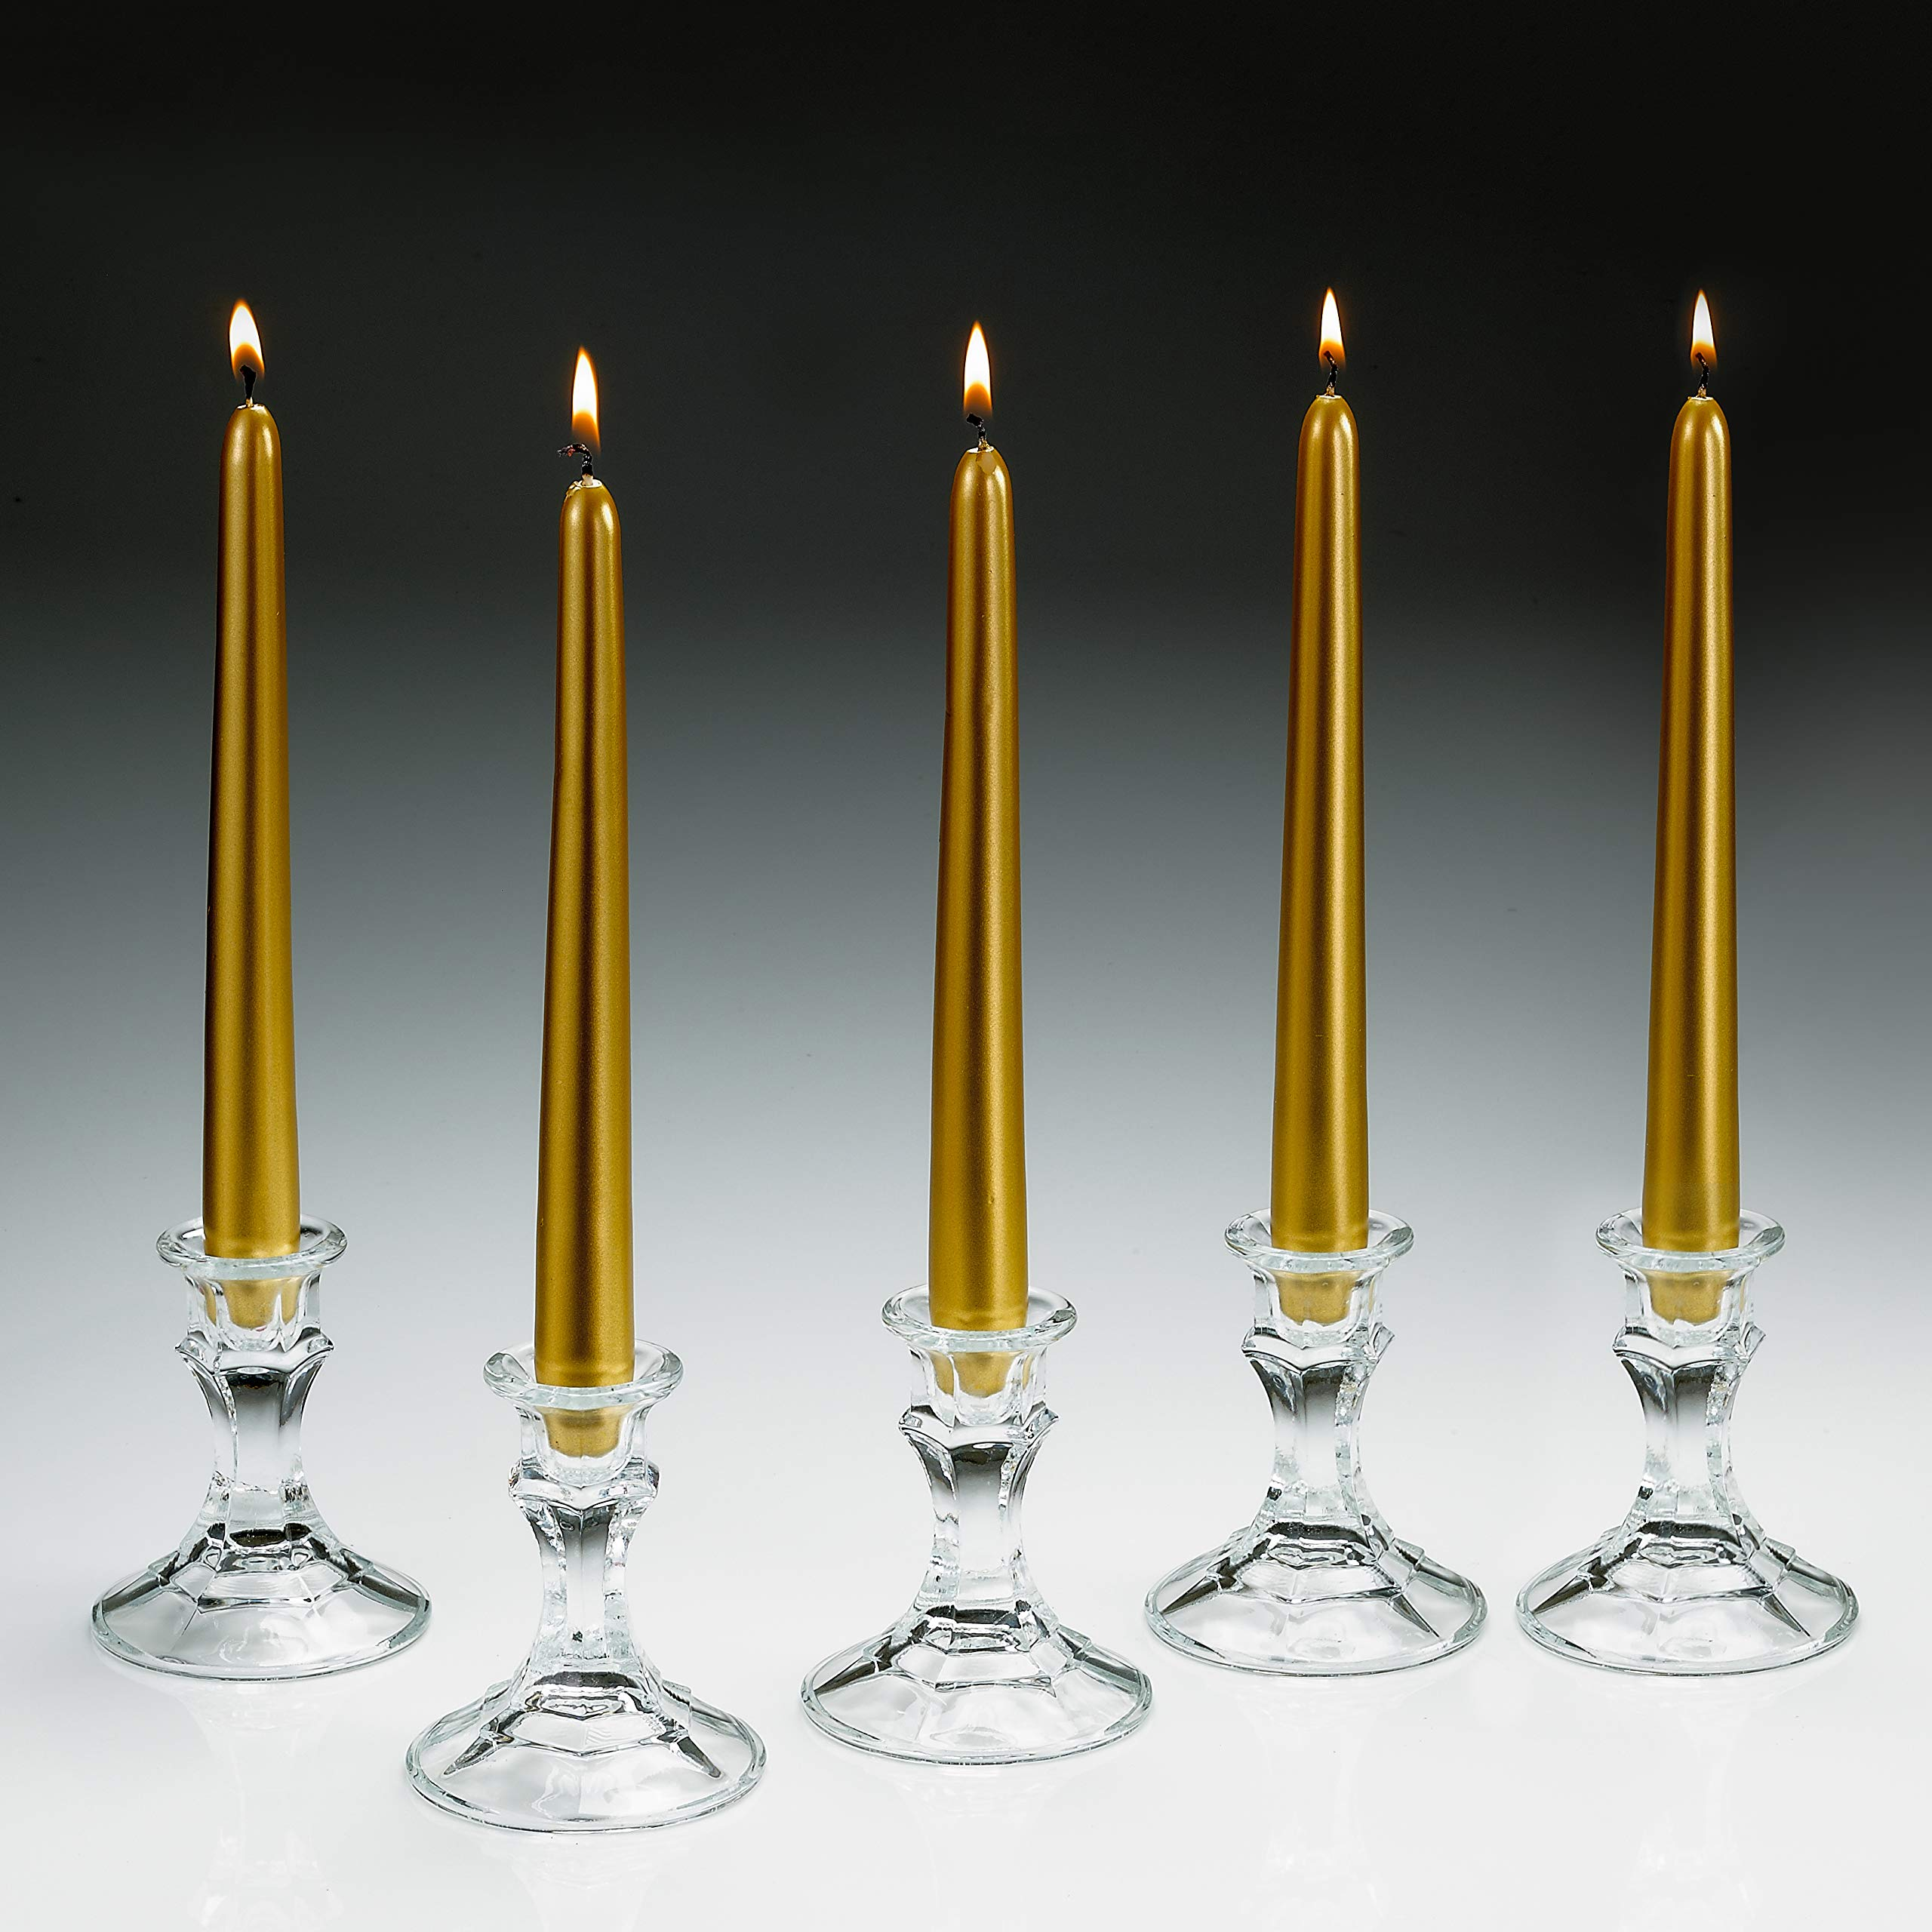 Light In the Dark Elegant Gold Metallic Taper Candle 10 Inch Tall Burn 7 Hours - Set of 5 Unscented Dinner Candle – Smokeless and Dripless with Metal Finish. by Light In the Dark